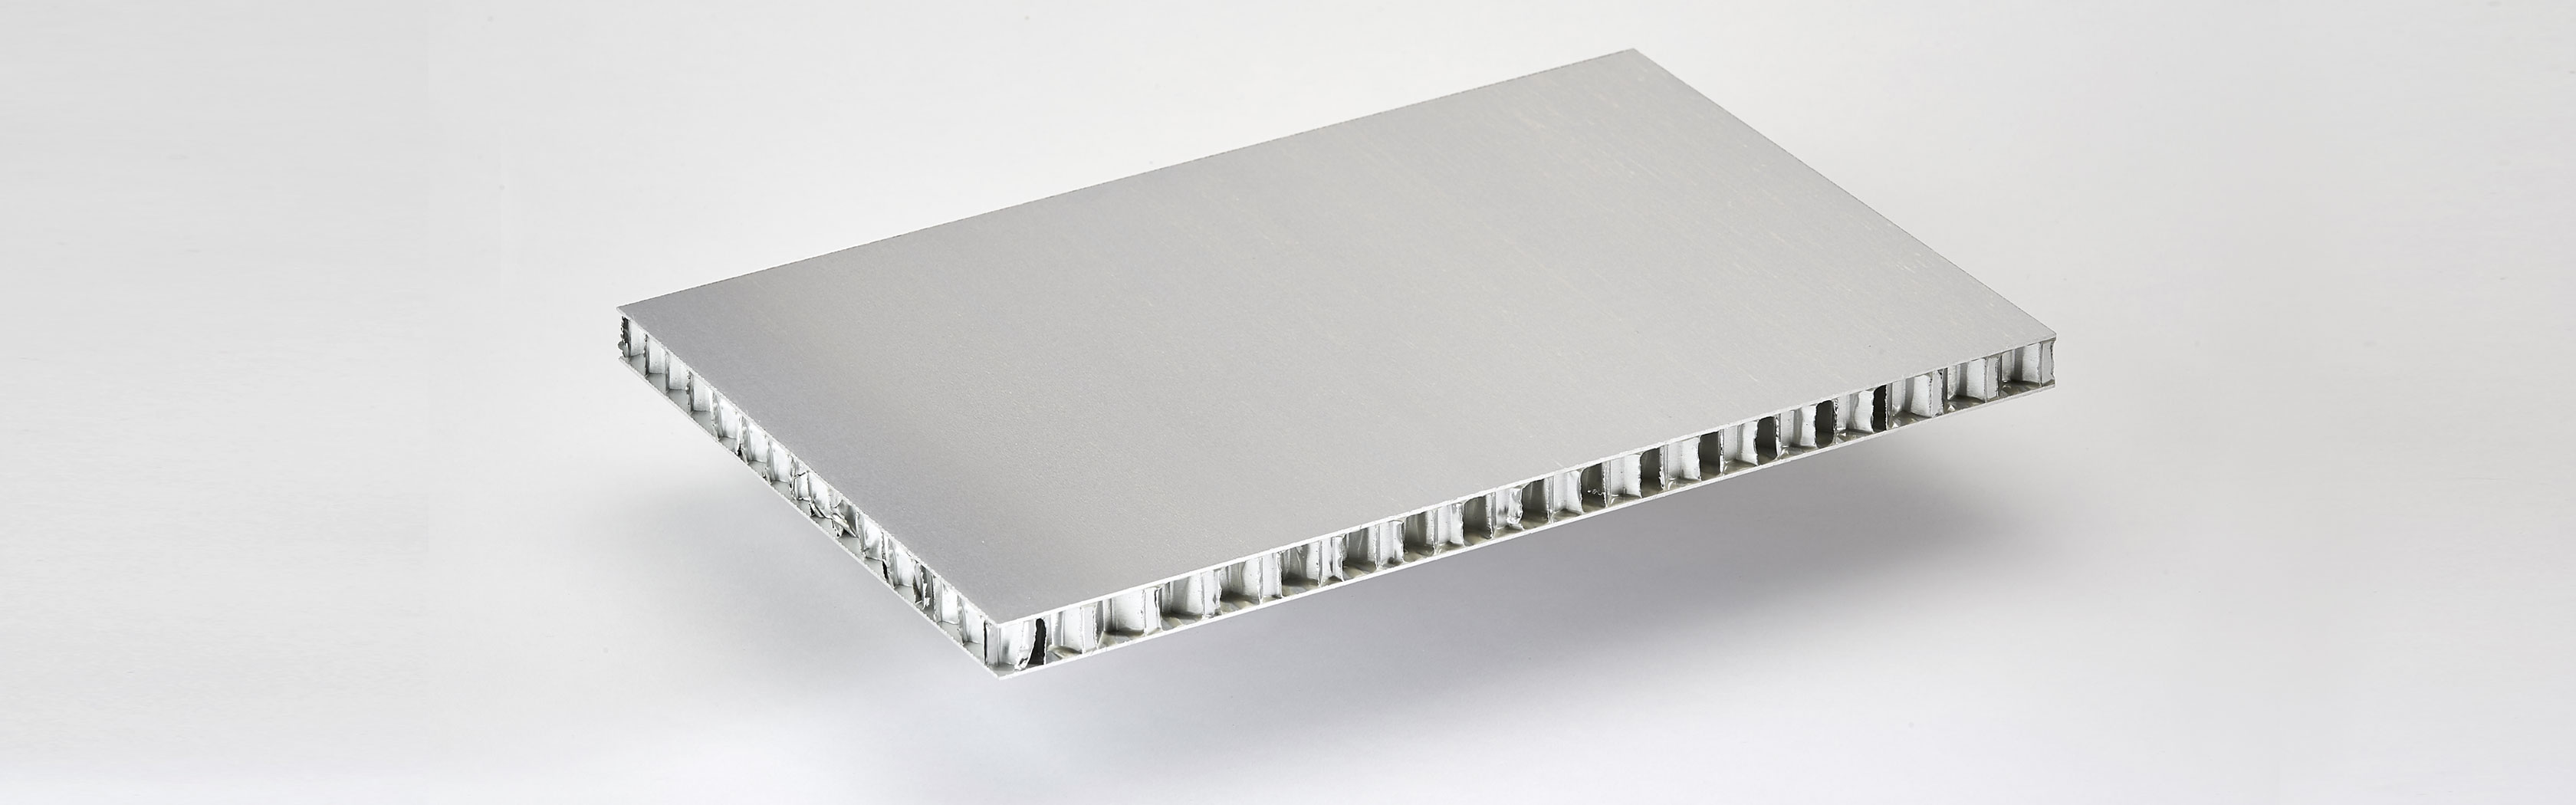 COMPOCEL® AL (FR)​ is a sandwich panel bonded with aluminium face material and with a core in aluminium honeycomb. It offers high mechanical properties and good